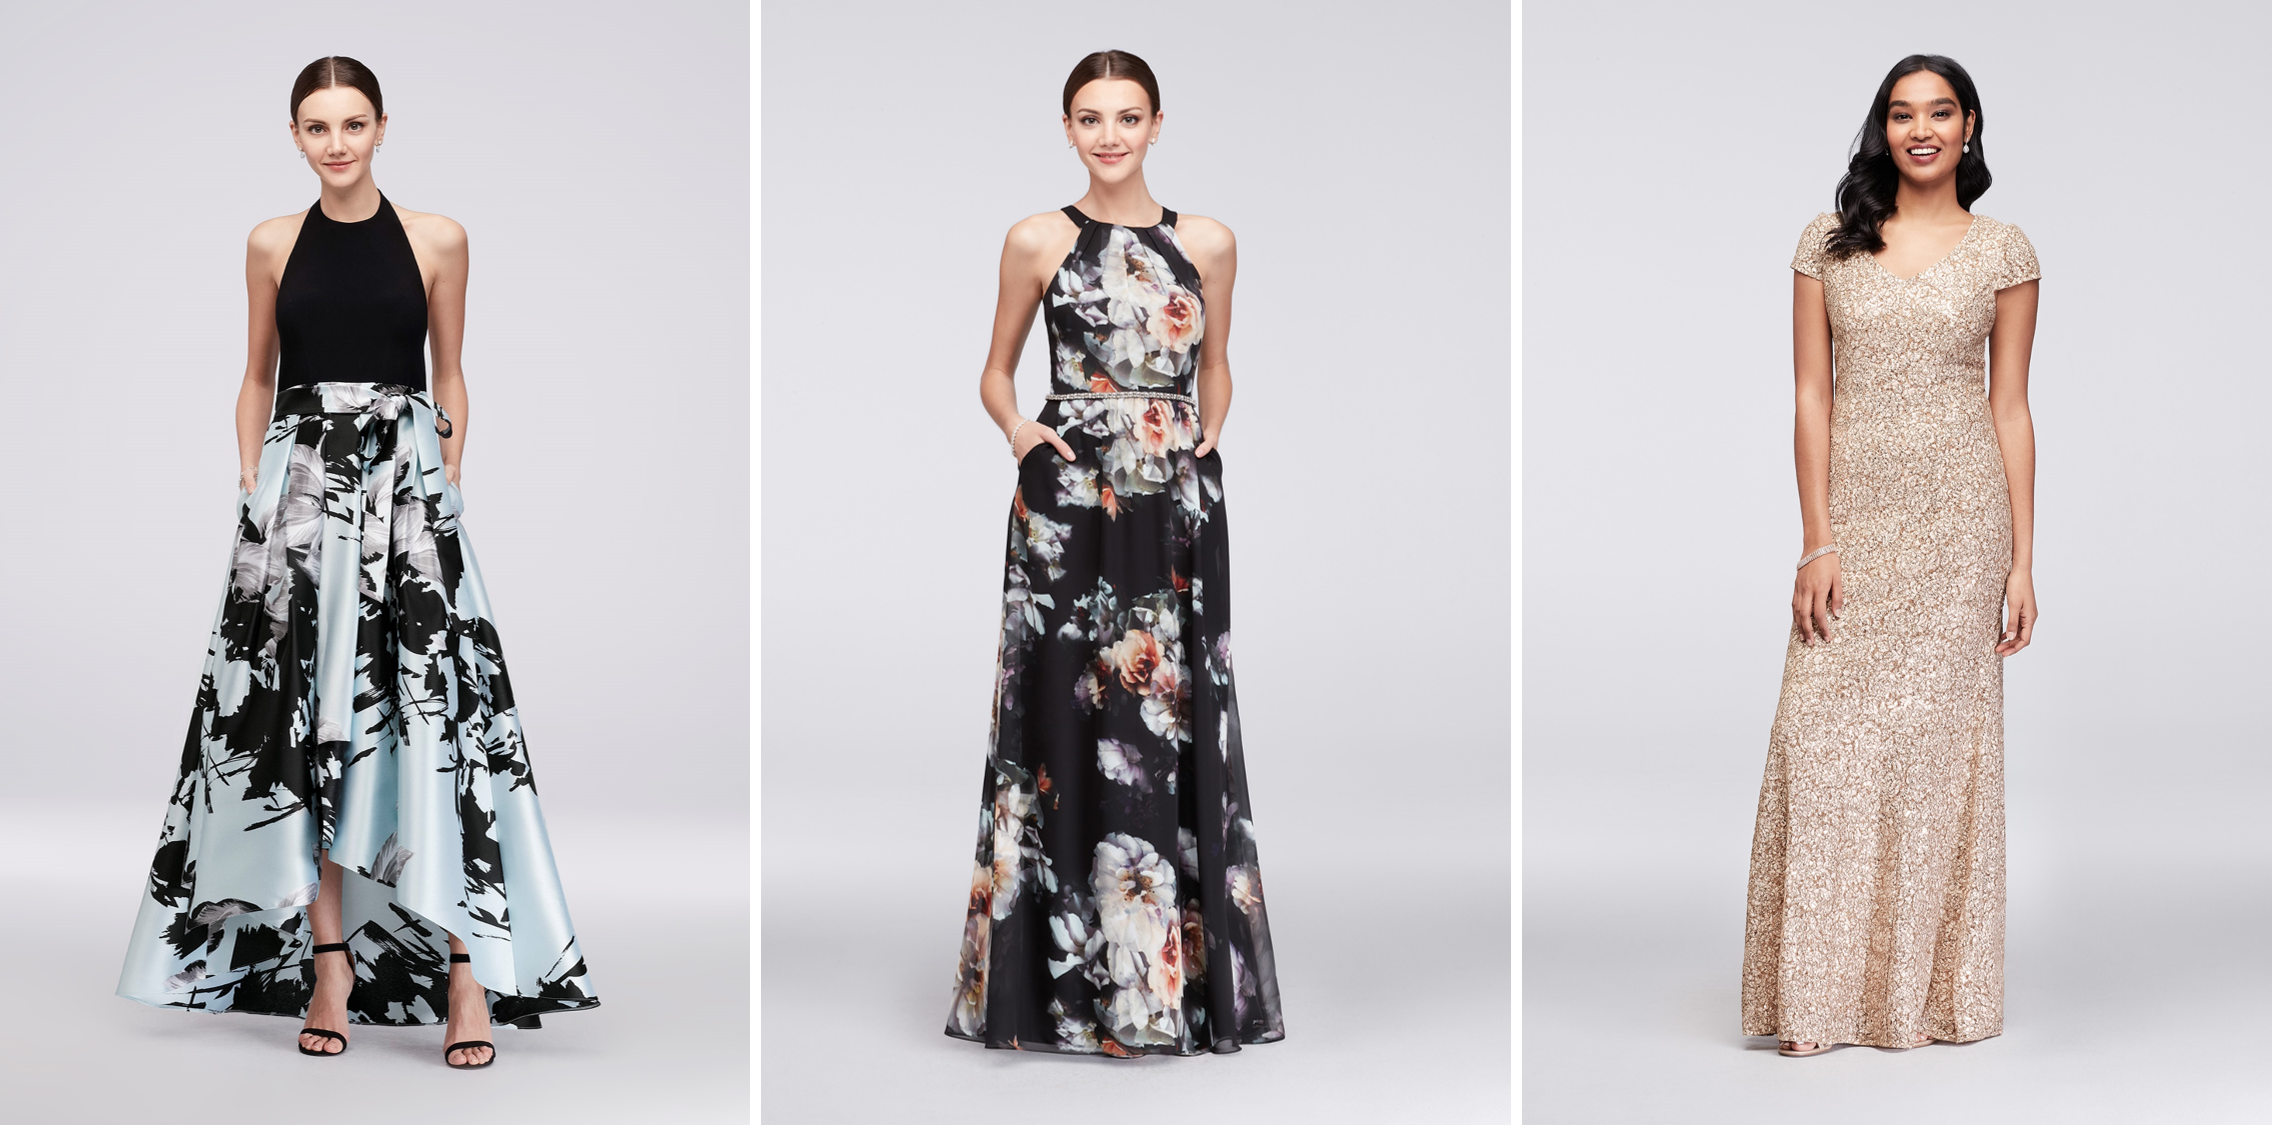 Mother of the Bride Dresses for Different Body Types | Accentuate Your Arms